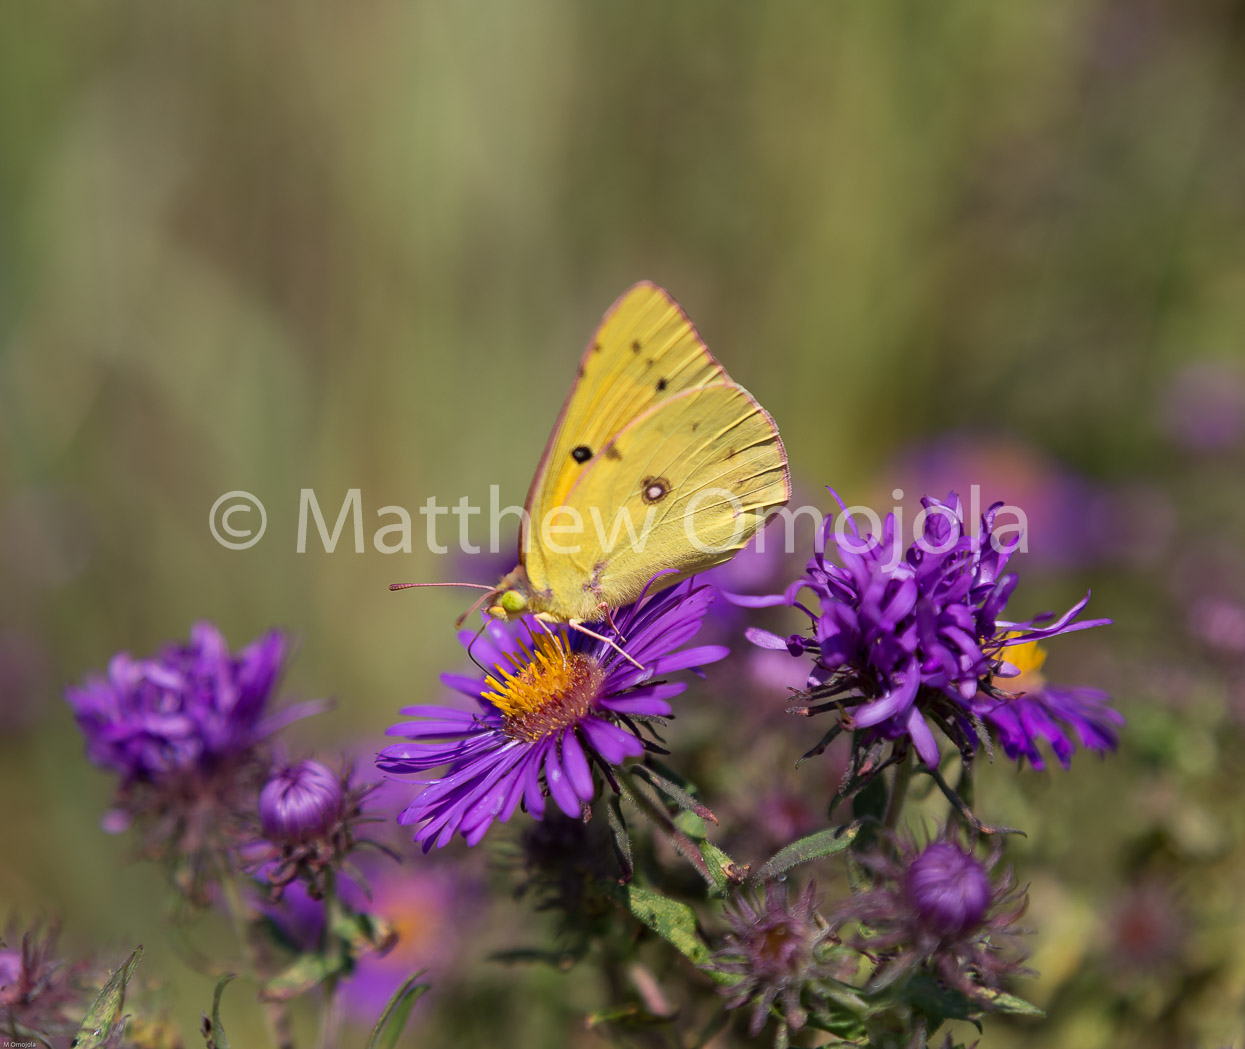 IMG_7843_Clouded_yellow_butterfly_on_purple_Zinnia.jpg